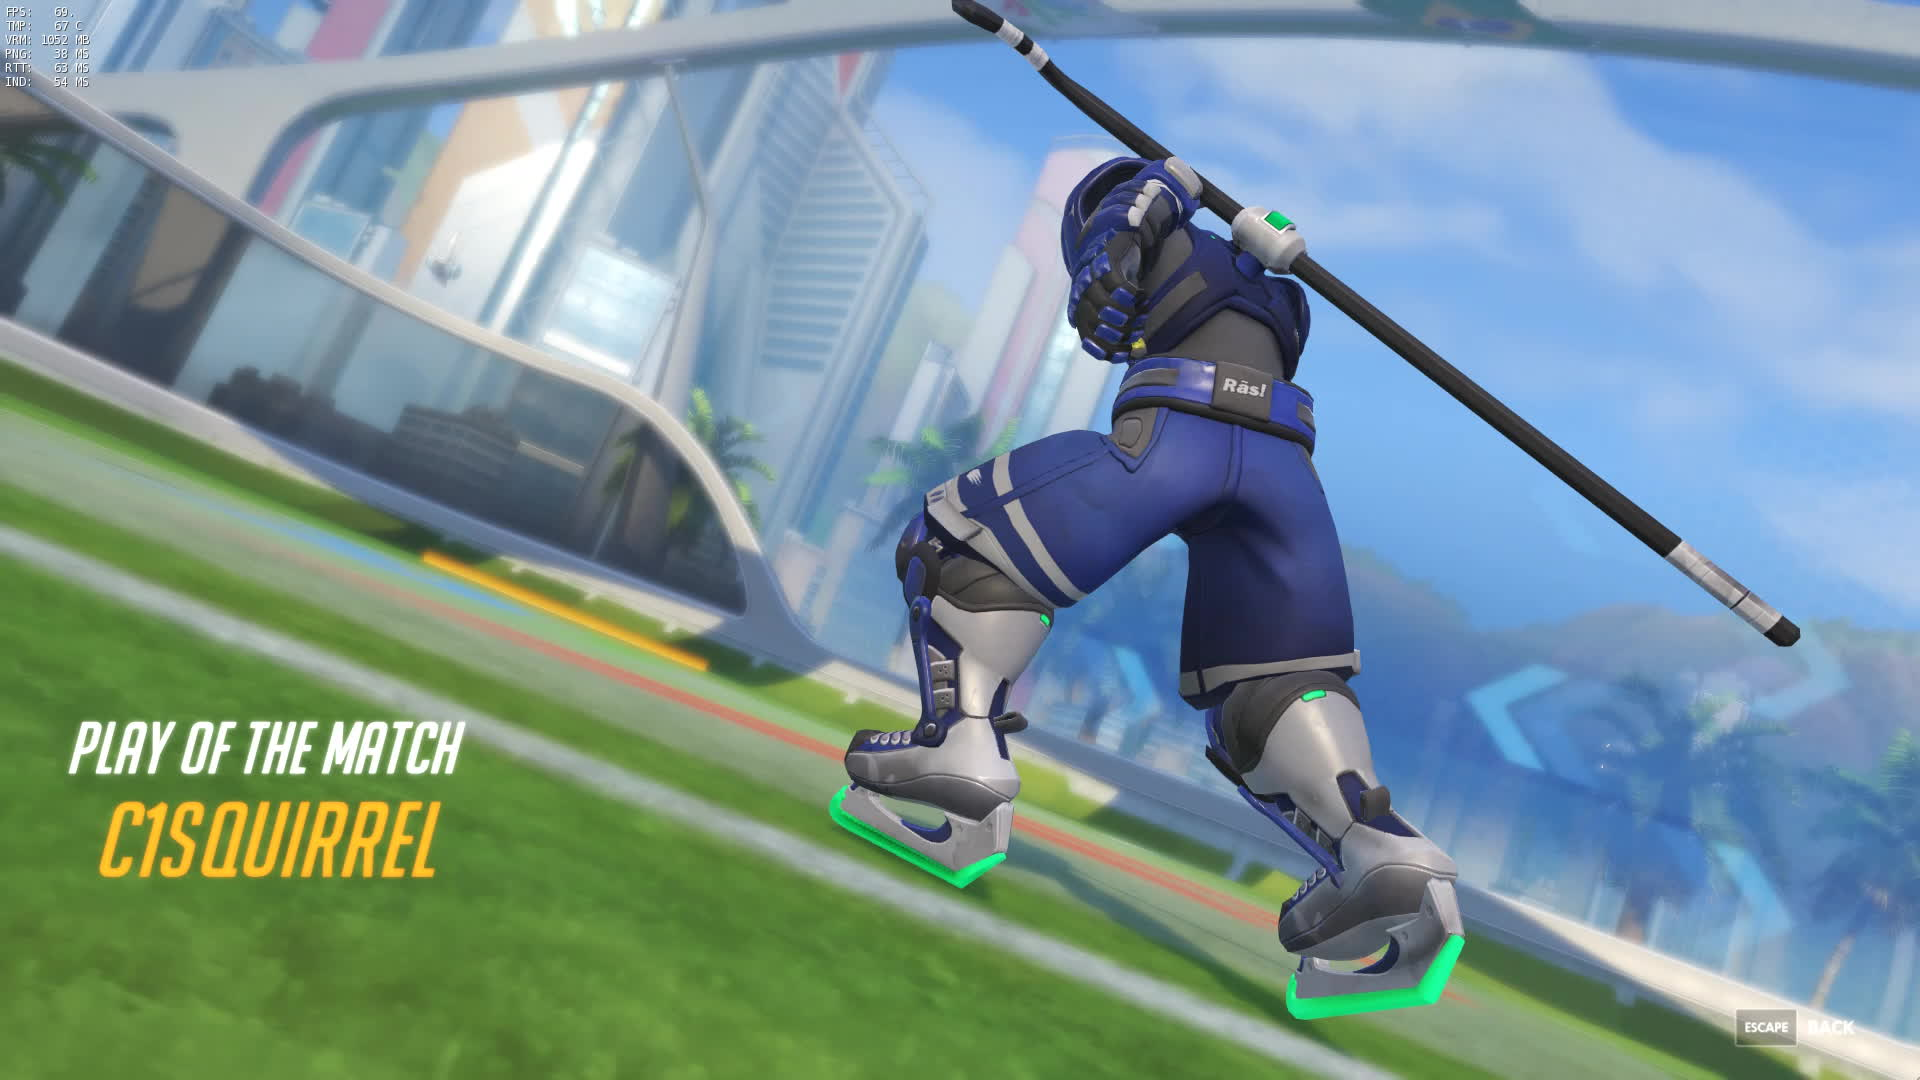 overwatch, Wow! Wow! Wow! Well Played! GIFs